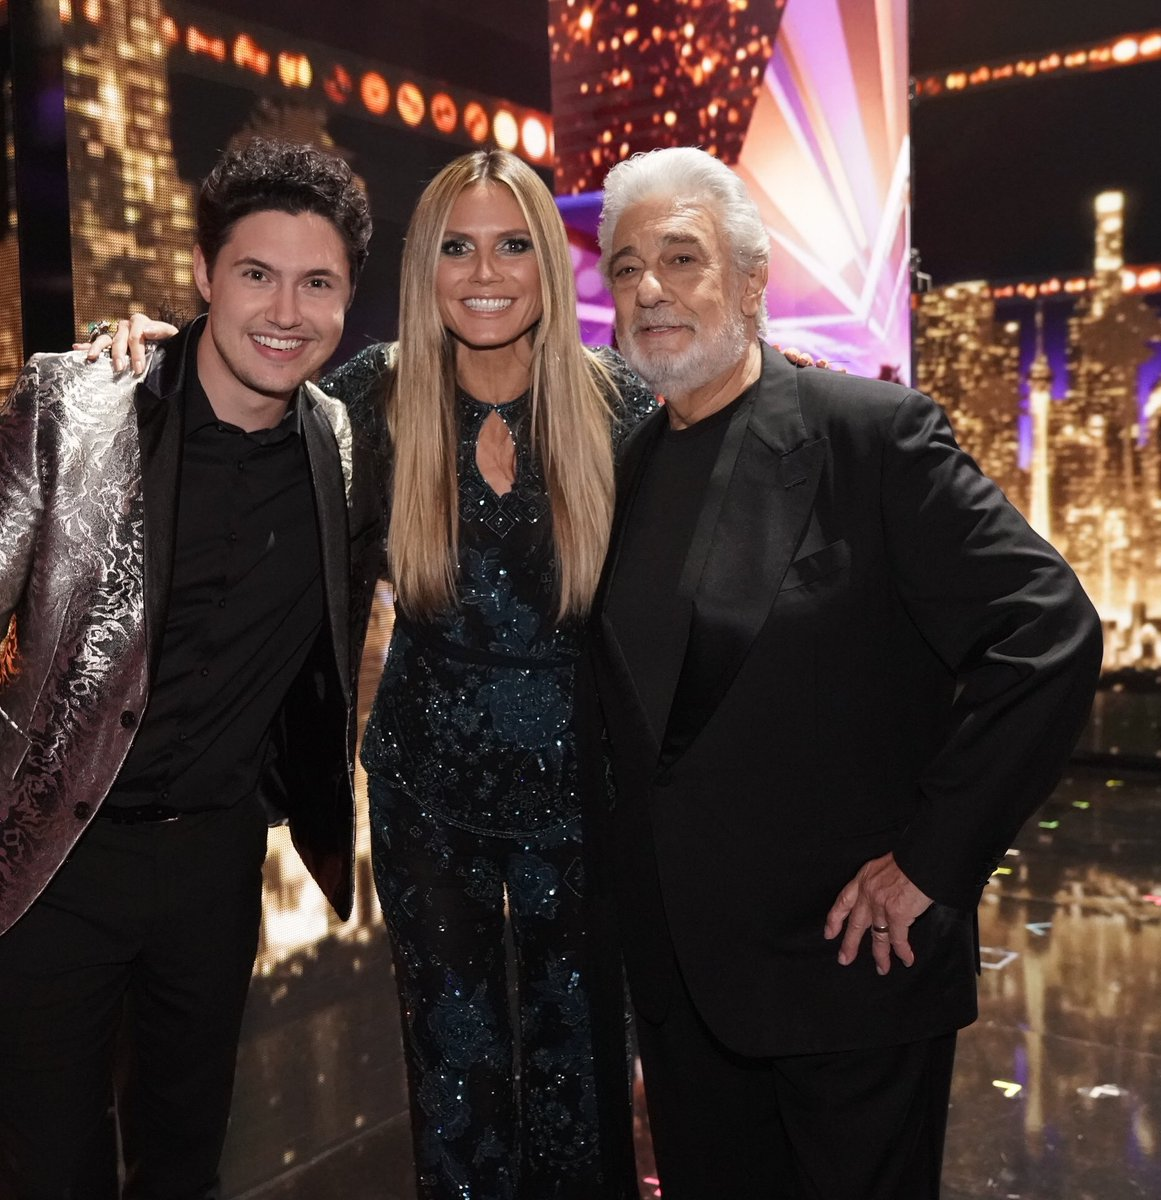 With one of my favorite @agt acts @DanielEmmet and one of the best voices in the world @PlacidoDomingo! https://t.co/EvF1ox2usO